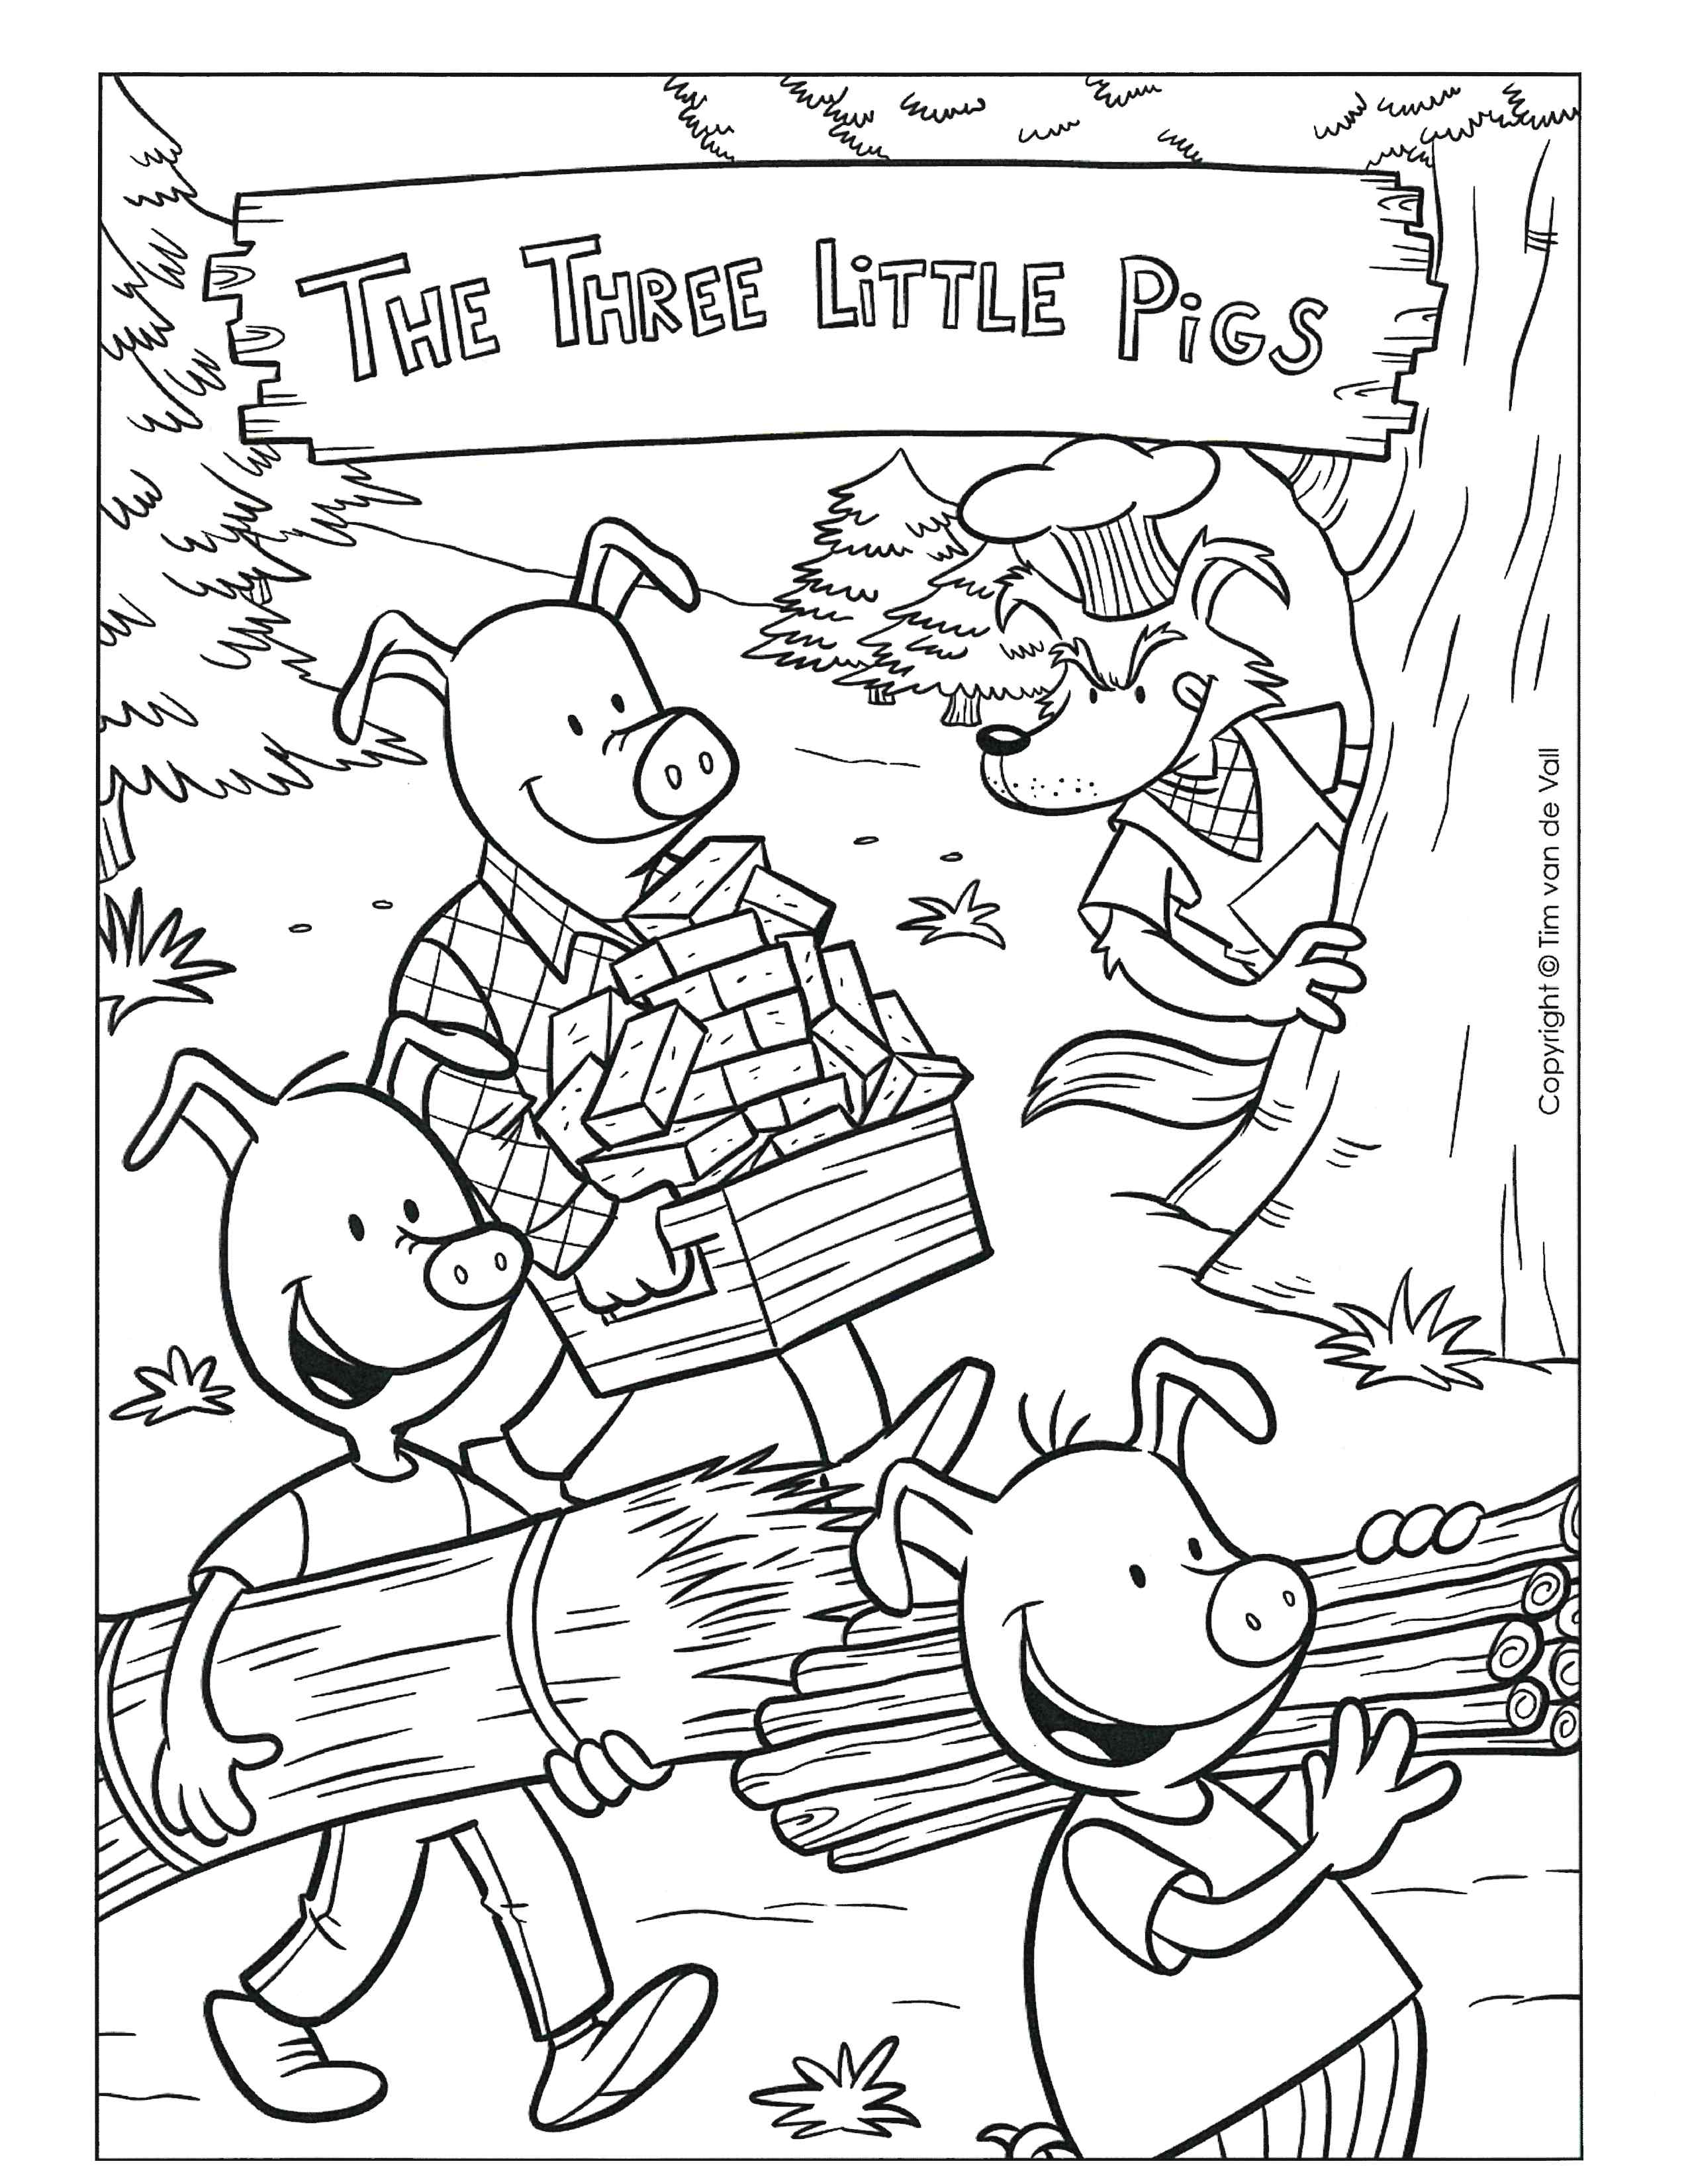 Week 4 Three Little Pigs color sheet